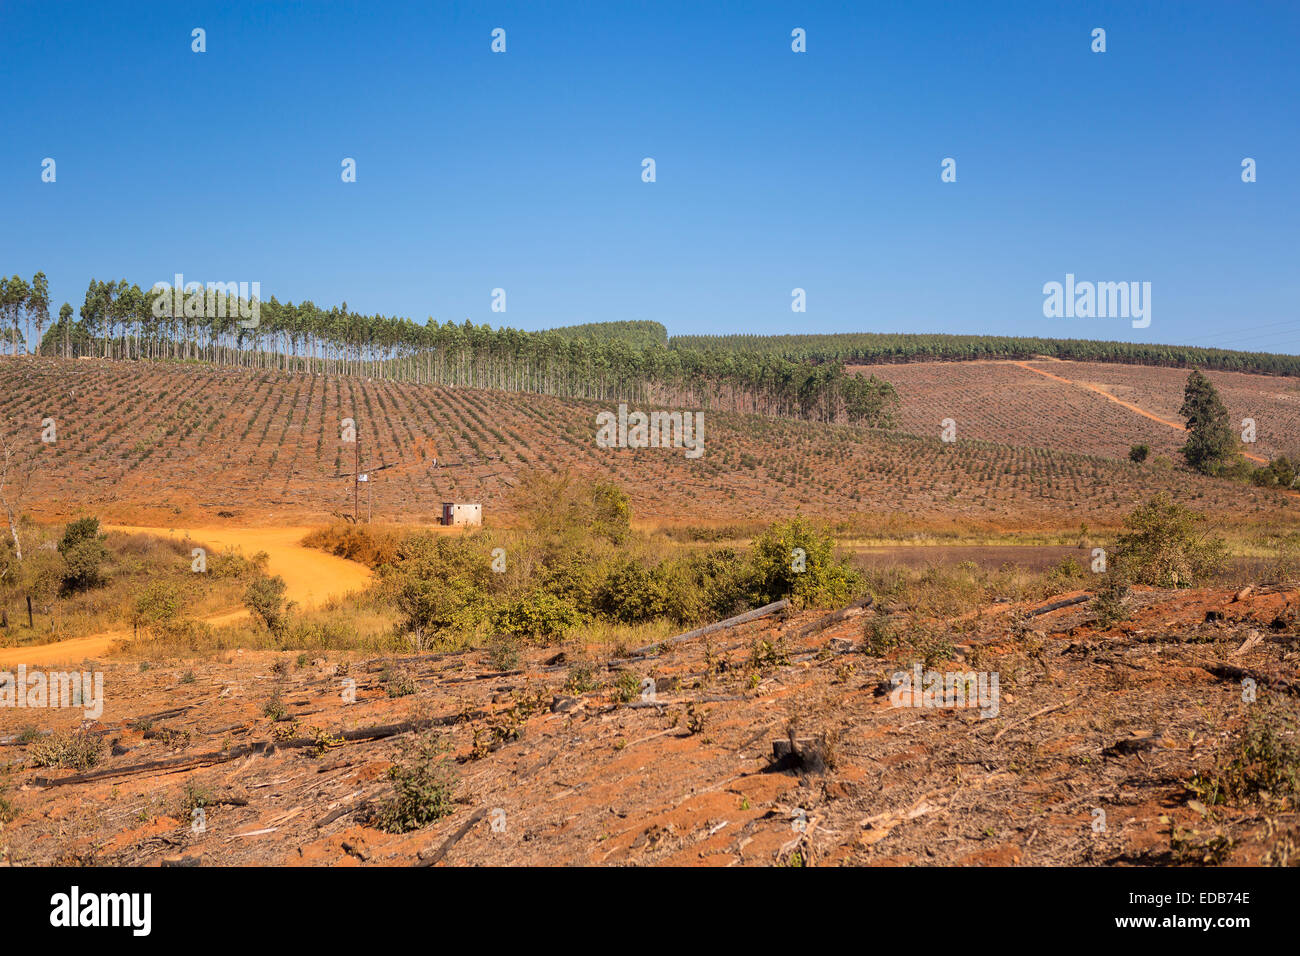 HHOHHO, SWAZILAND, AFRICA - Timber industry landscape, trees and clearcut. Stock Photo